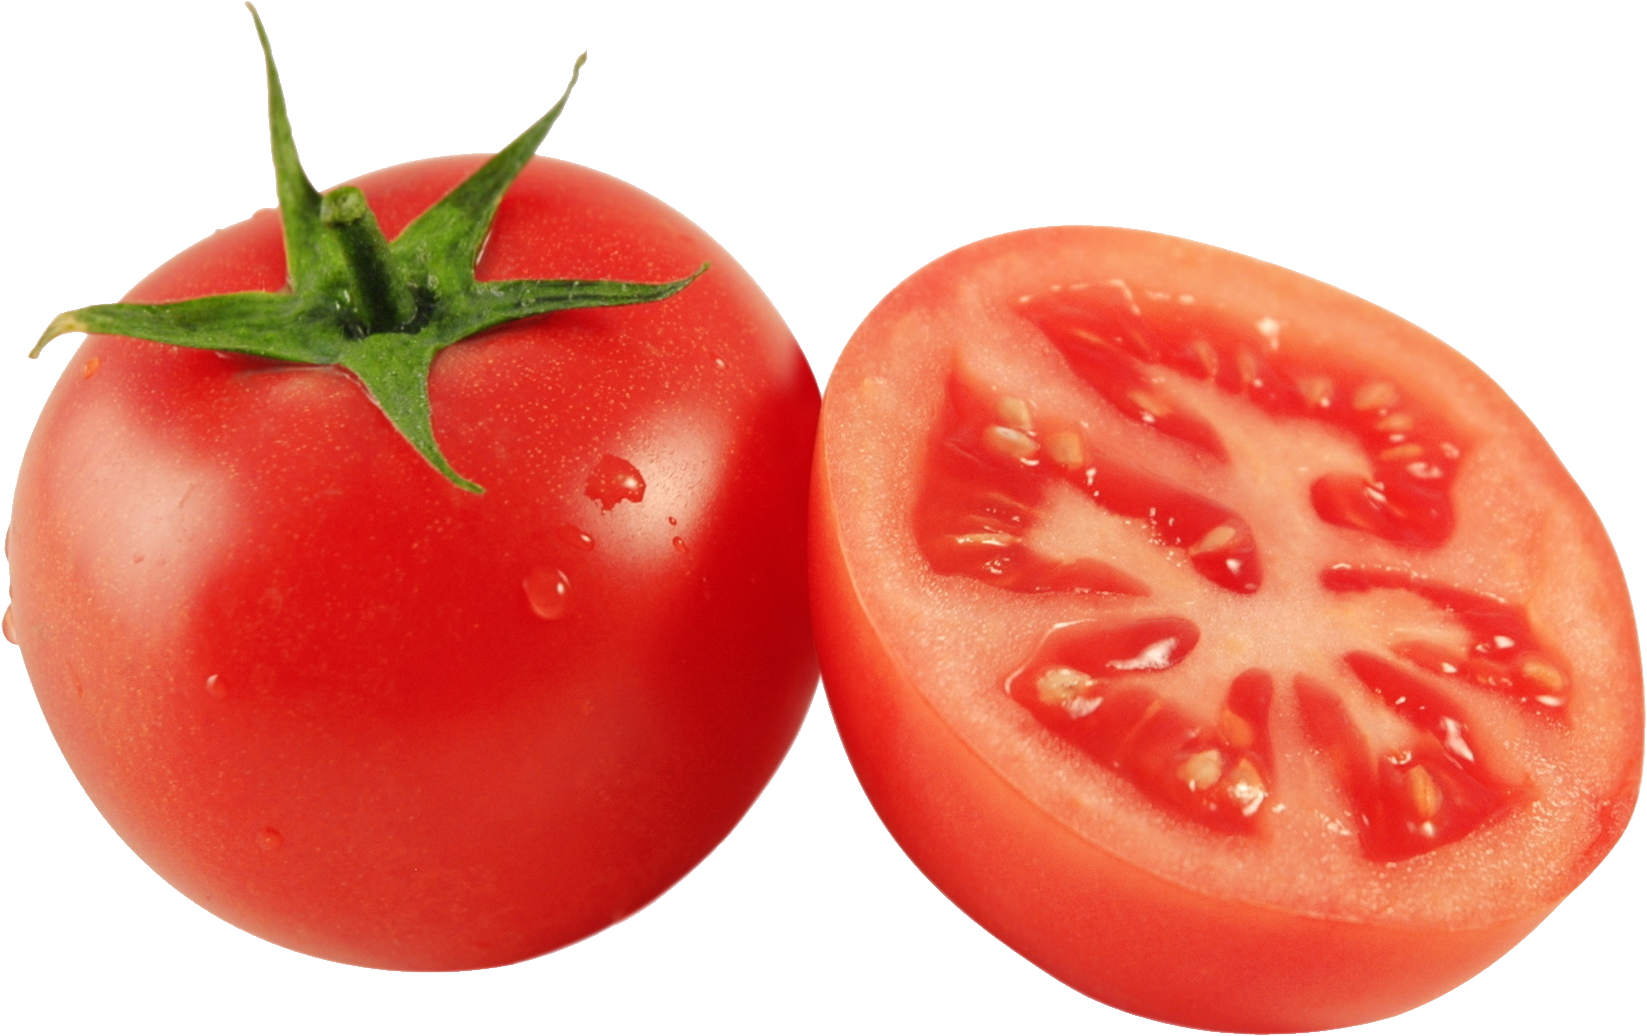 Tomato PNG images free download.